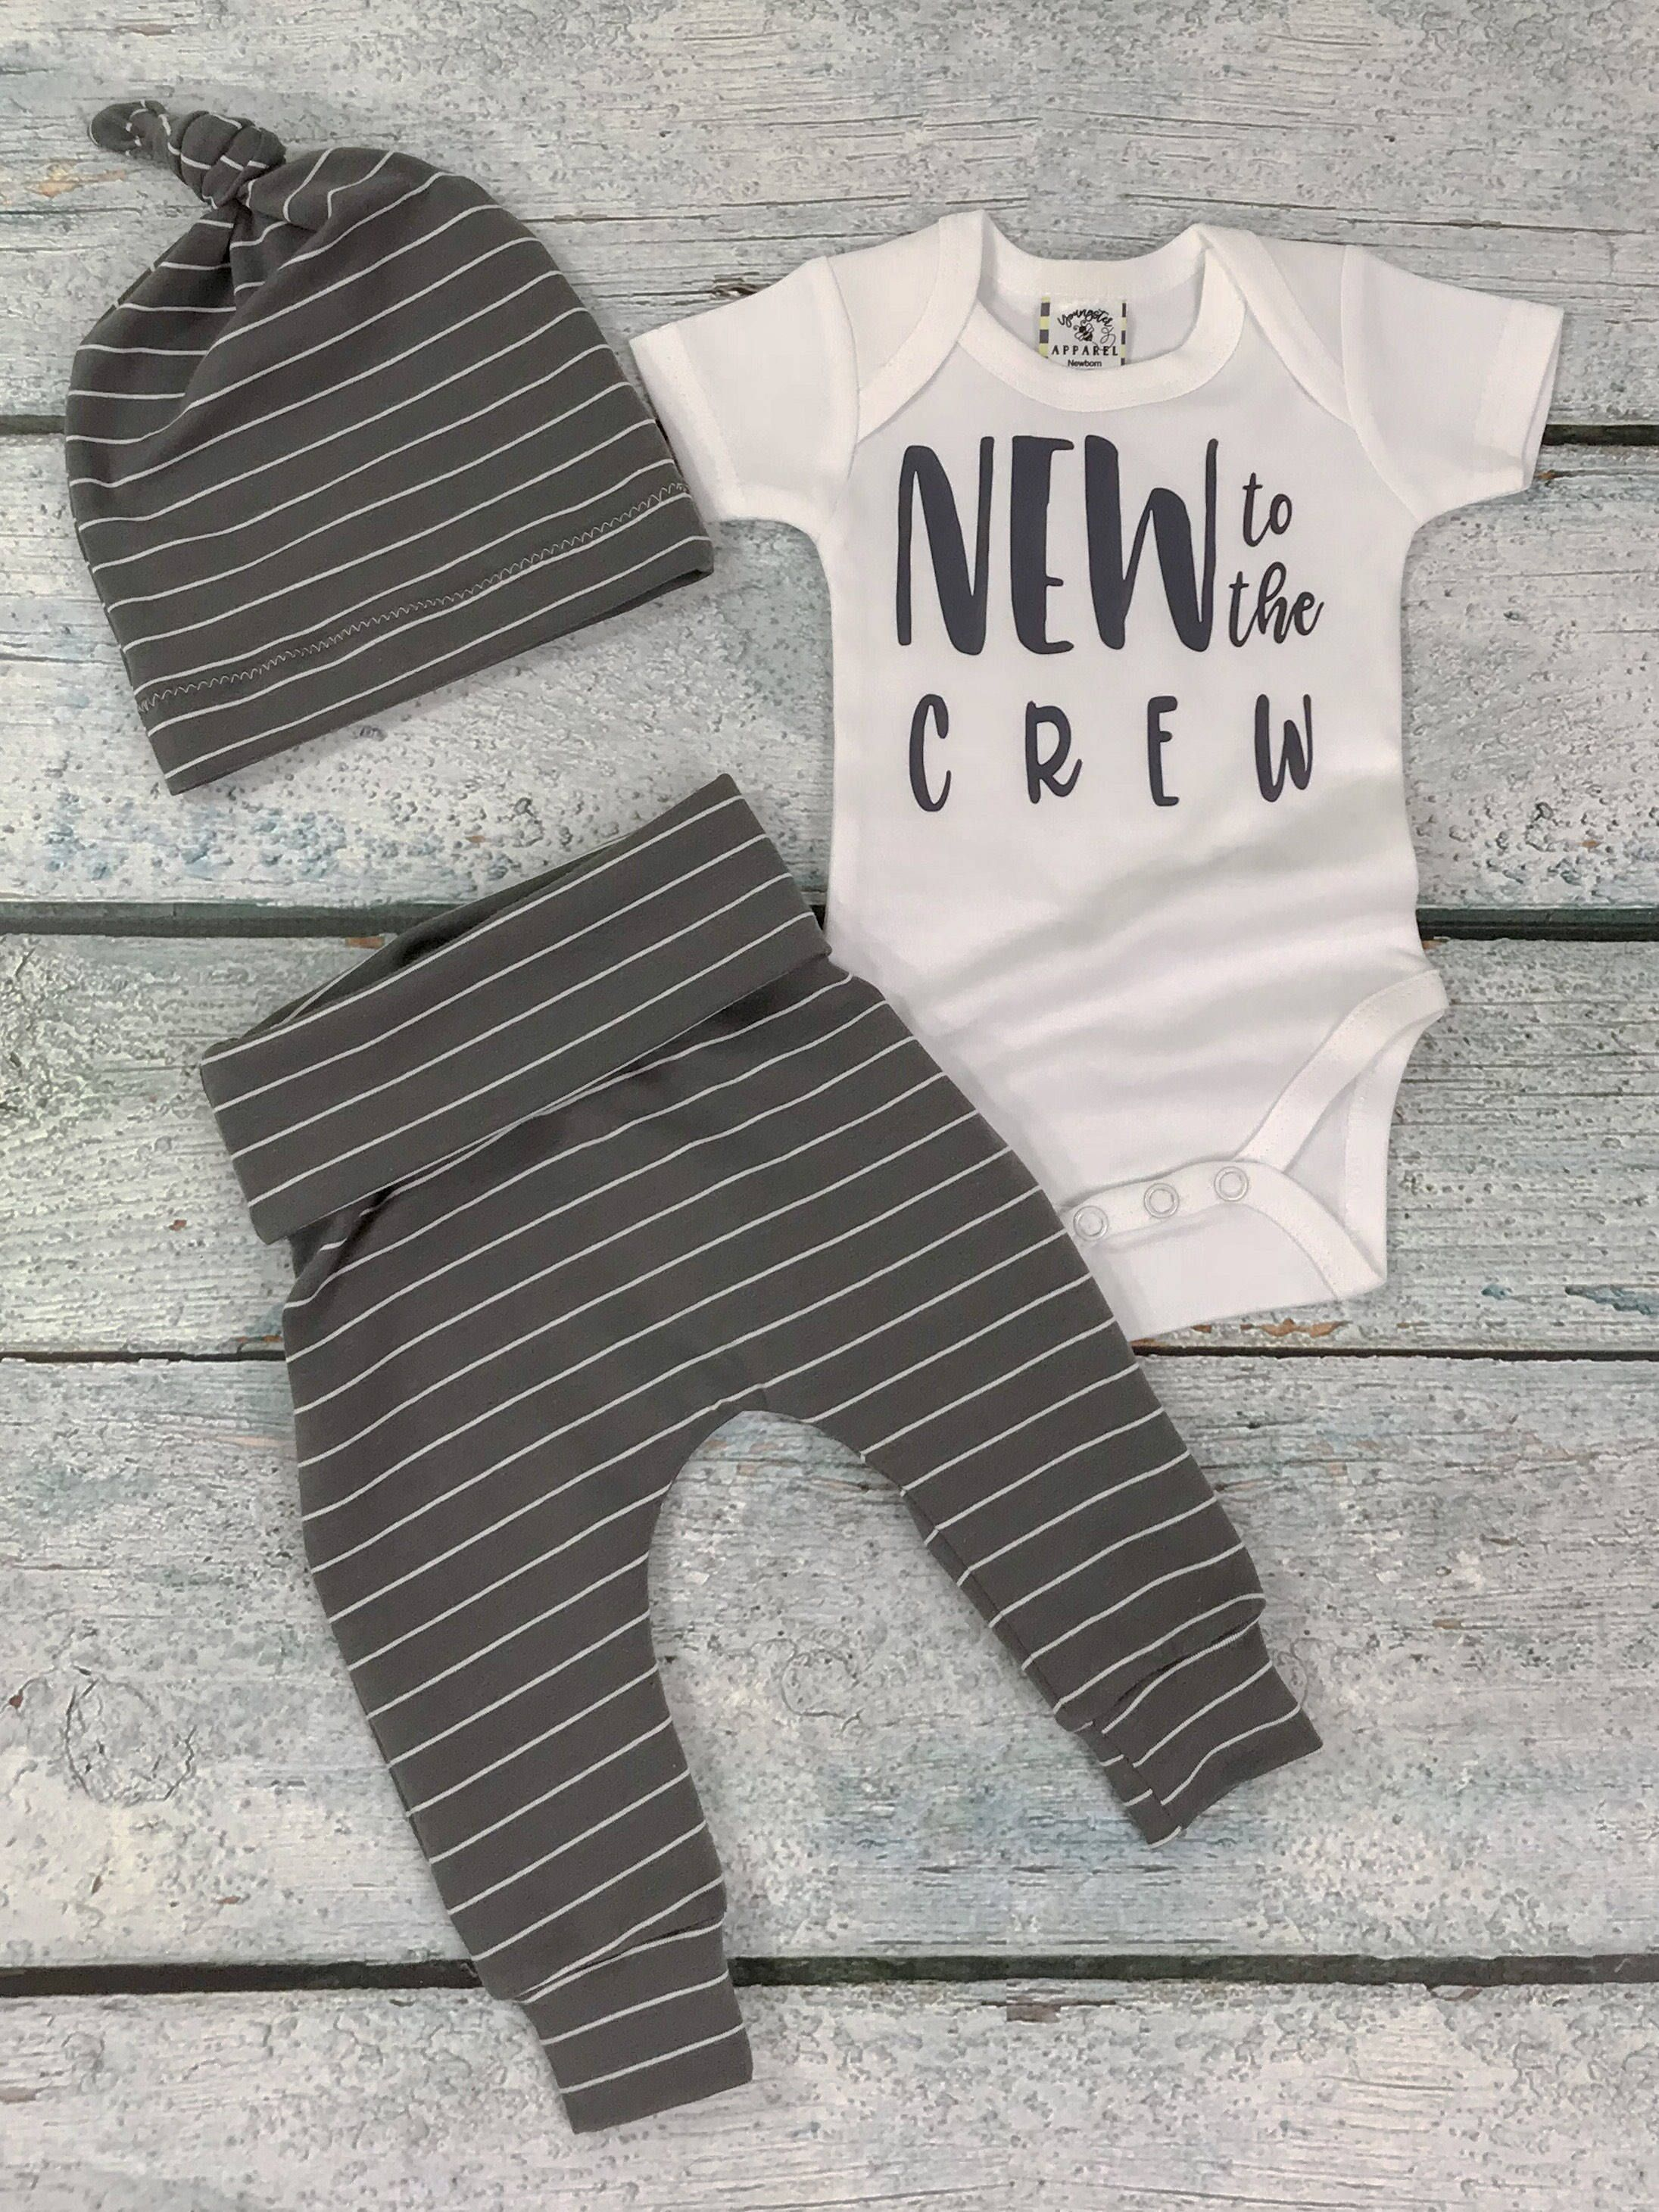 Baby Boy Take Home Outfit : outfit, Coming, Outfit/new, Set/going, Set/baby, Charcoal, Stripe, Outfits,, Outfit,, Clothes, Newborn